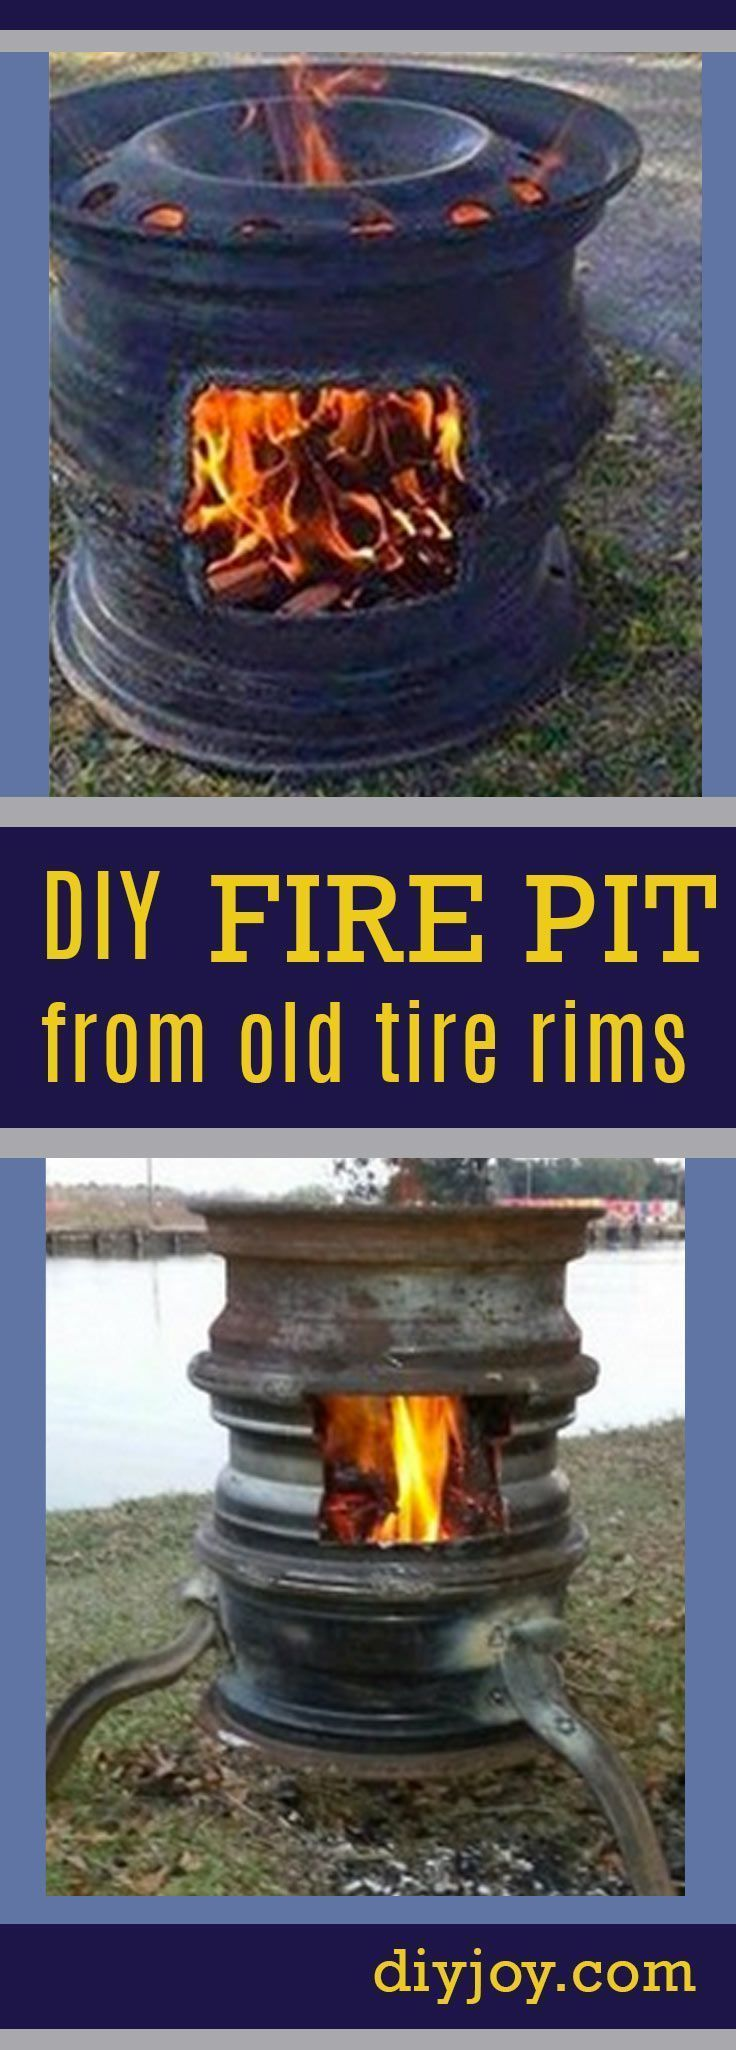 DIY Fire Pit from Old Tire Rims